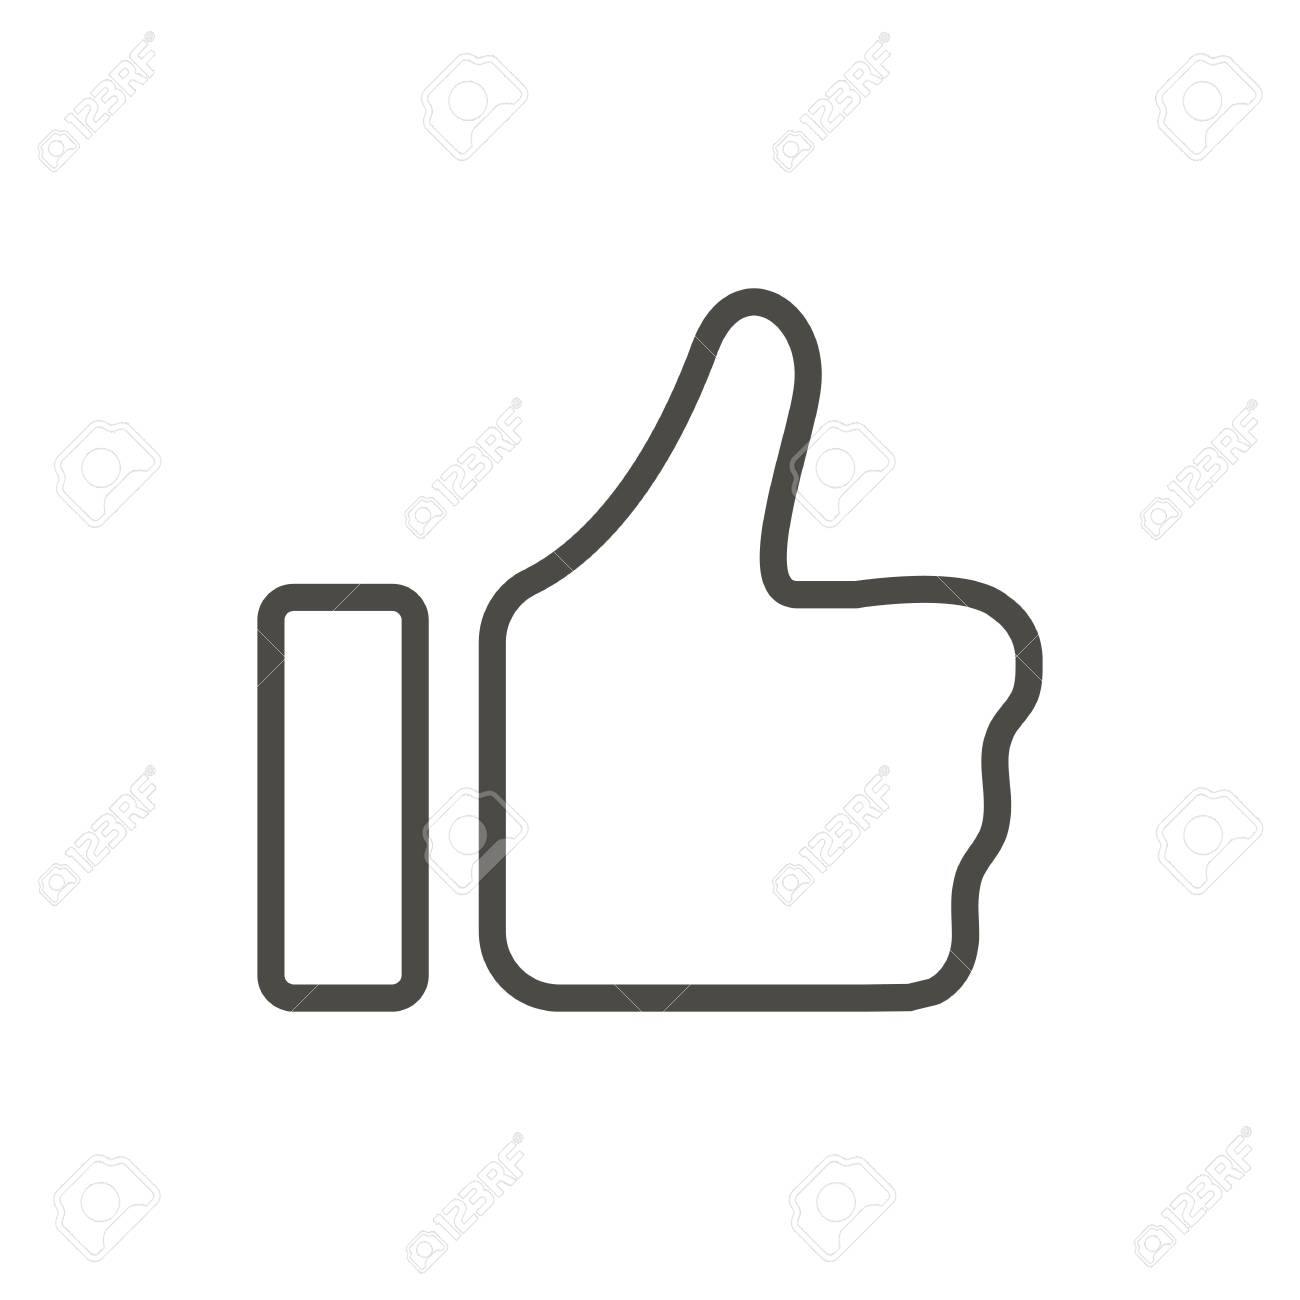 Thumb up icon vector. Line like symbol isolated. Trendy flat outline ui sign design. Thin linear like hand graphic pictogram for web site, mobile app. Logo illustration. - 102158245